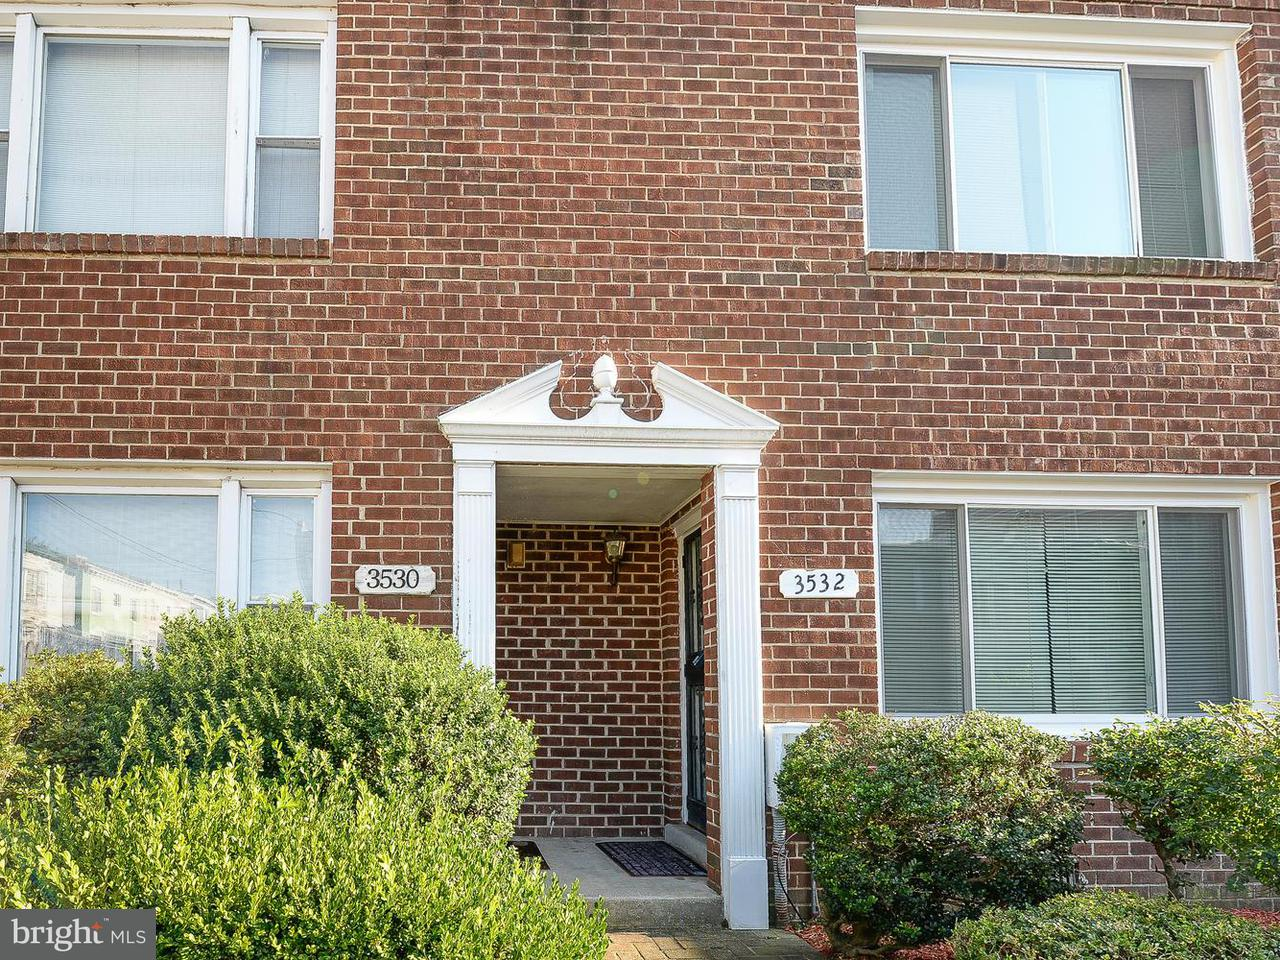 Townhouse for Sale at 3532 6TH ST NW #3532 3532 6TH ST NW #3532 Washington, District Of Columbia 20010 United States